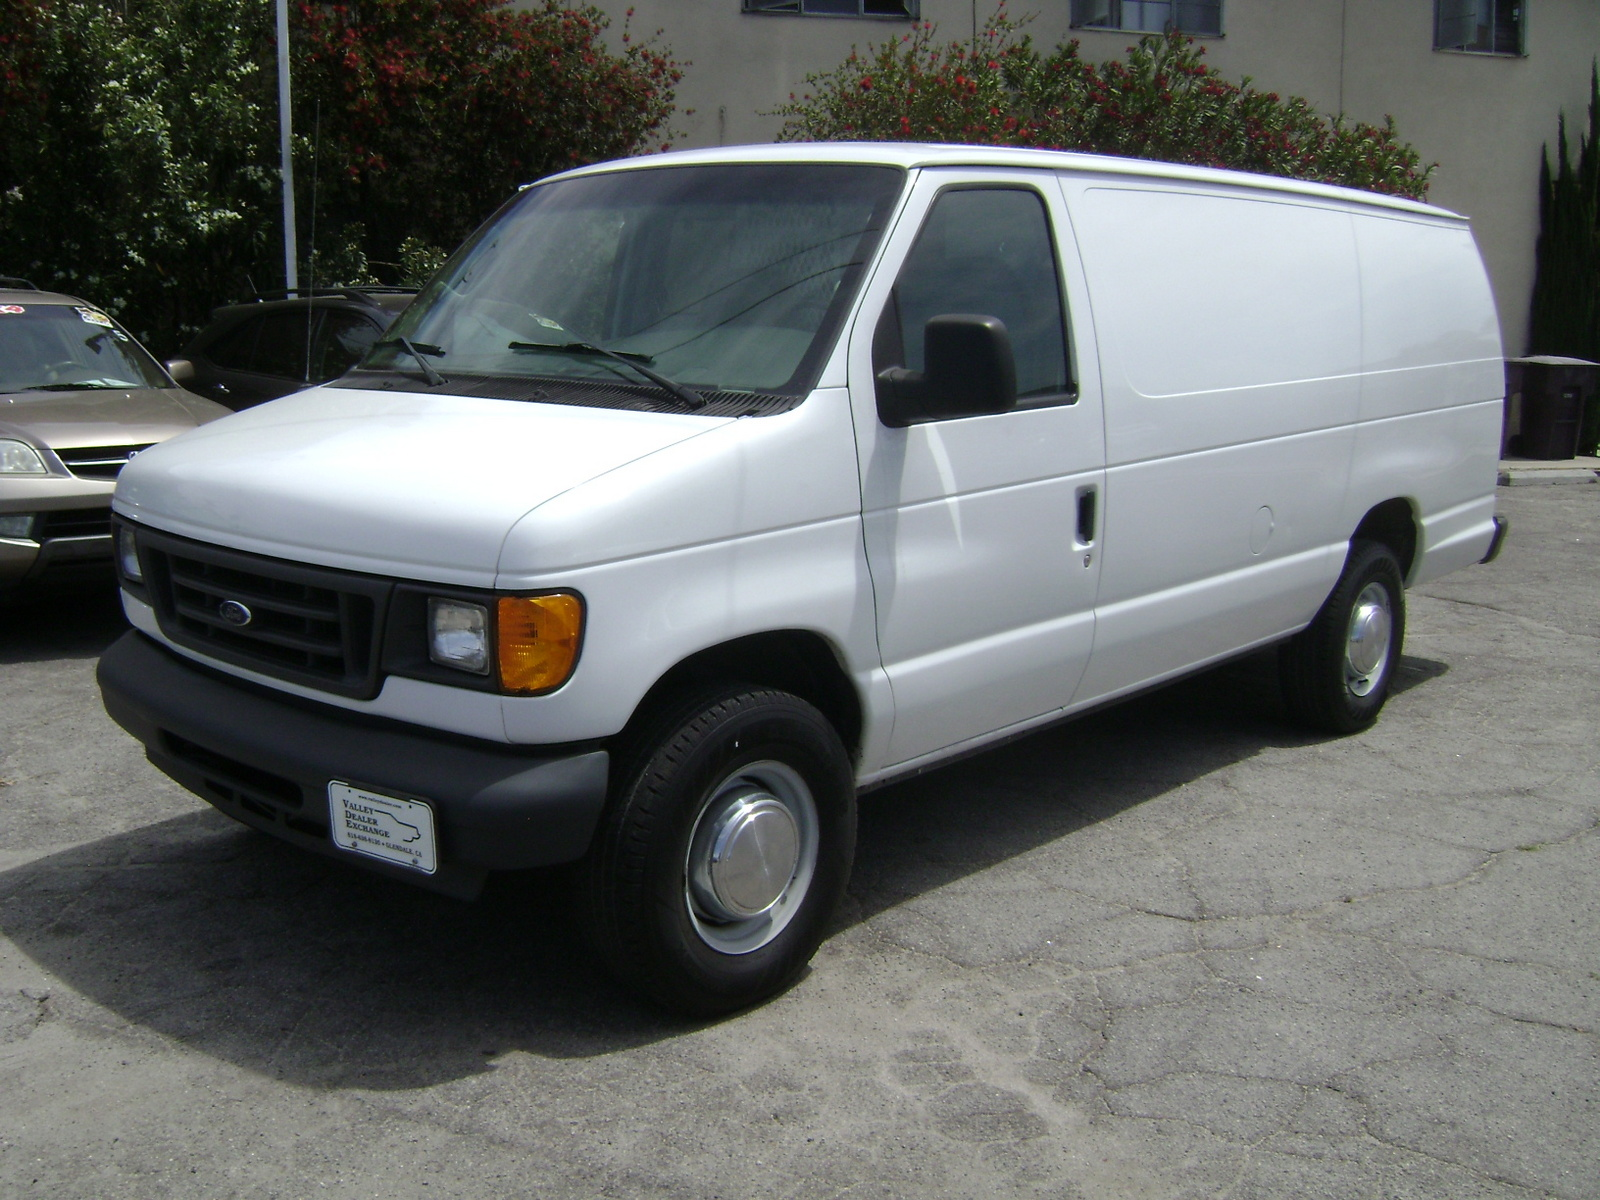 Picture of 2005 Ford Econoline Cargo 3 Dr E-350 Super Duty Cargo Van Extended